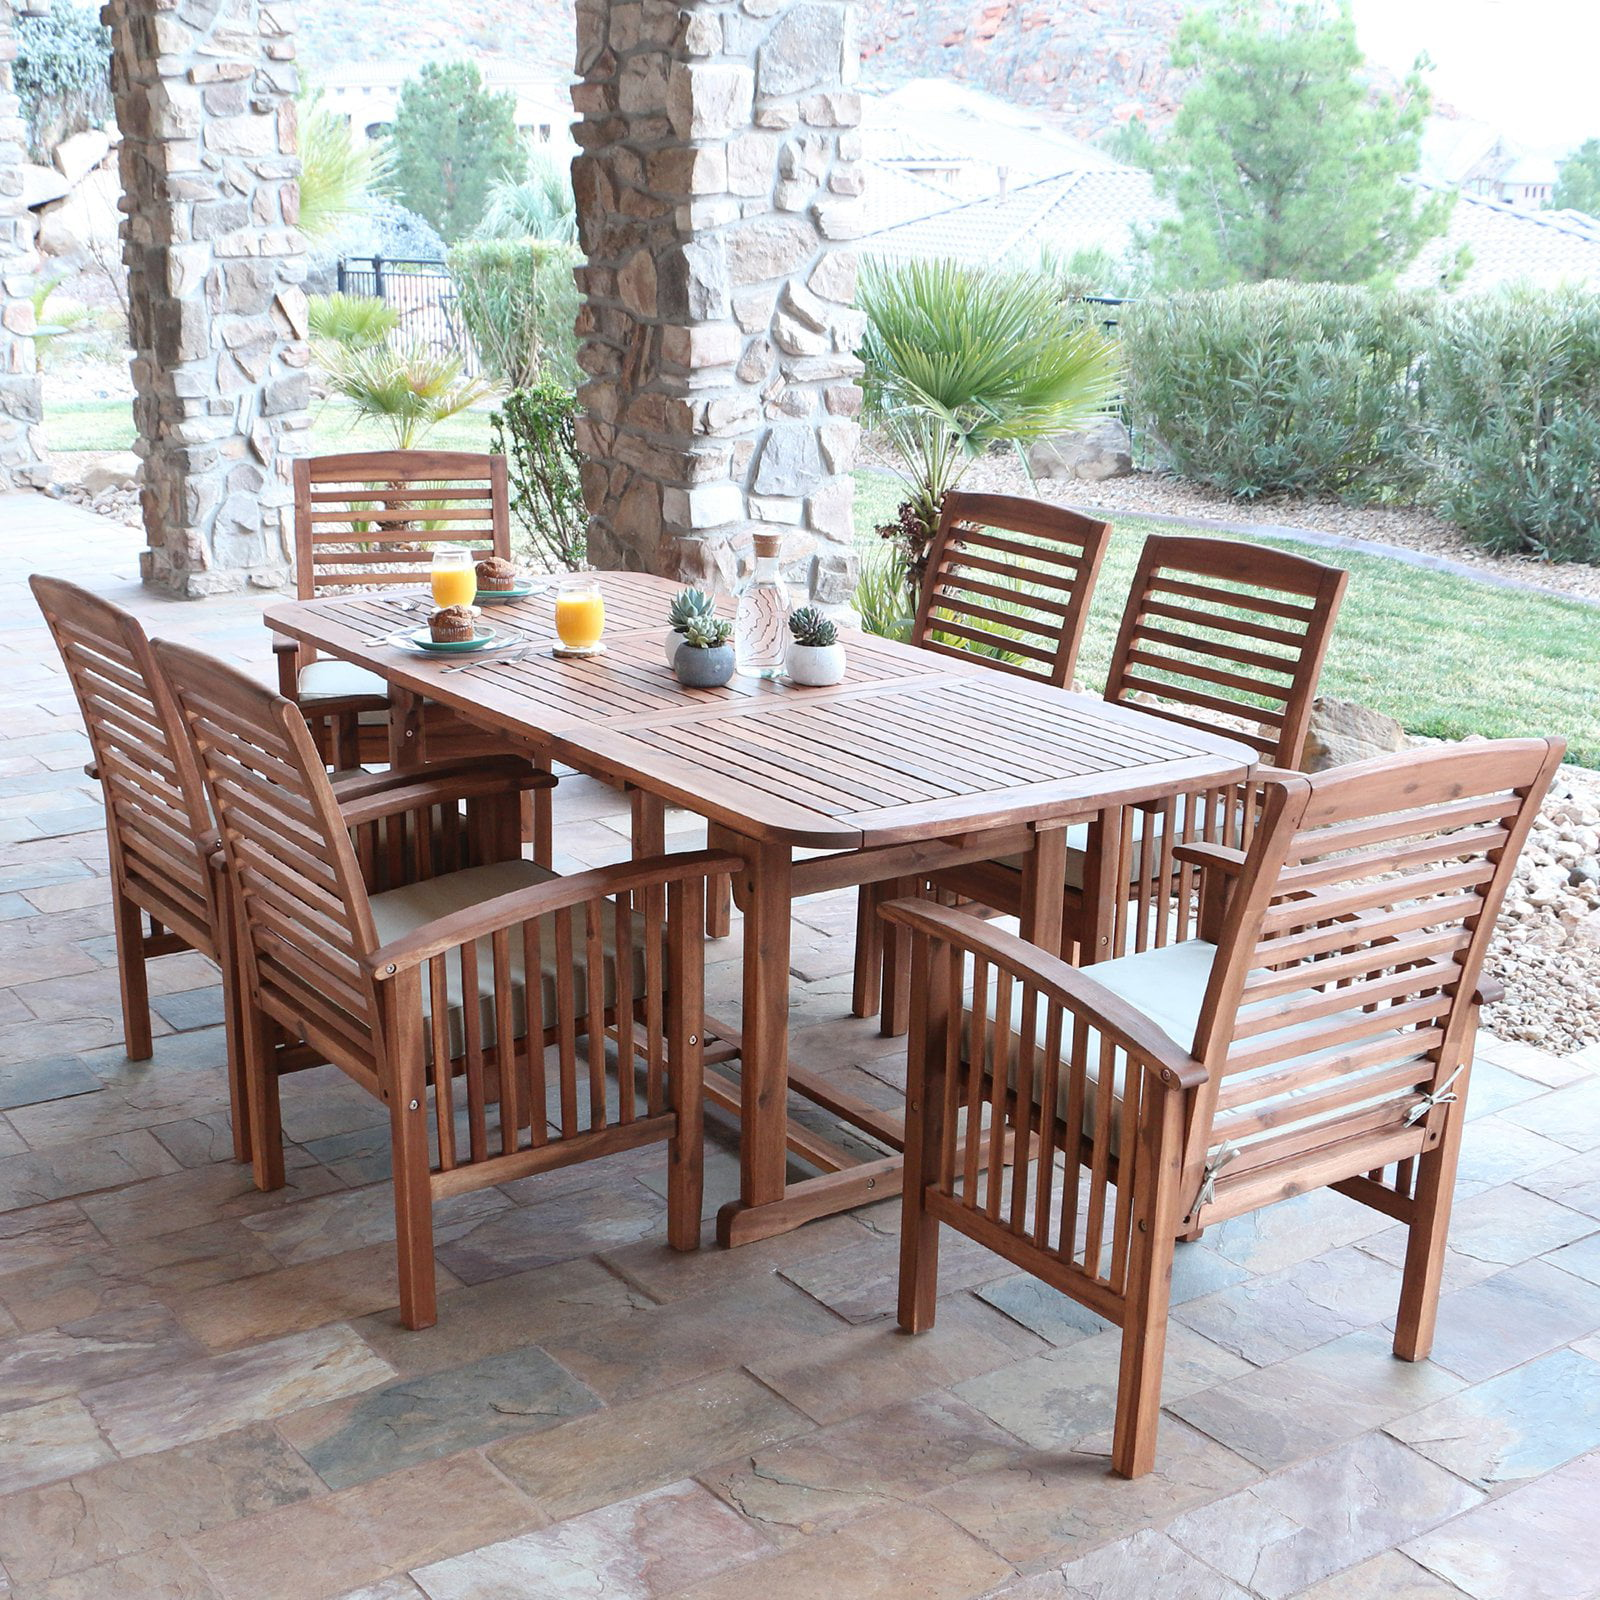 prod style ty p set sets wid limited availability spin living patio dining piece qlt outdoor furniture brookline pennington hei